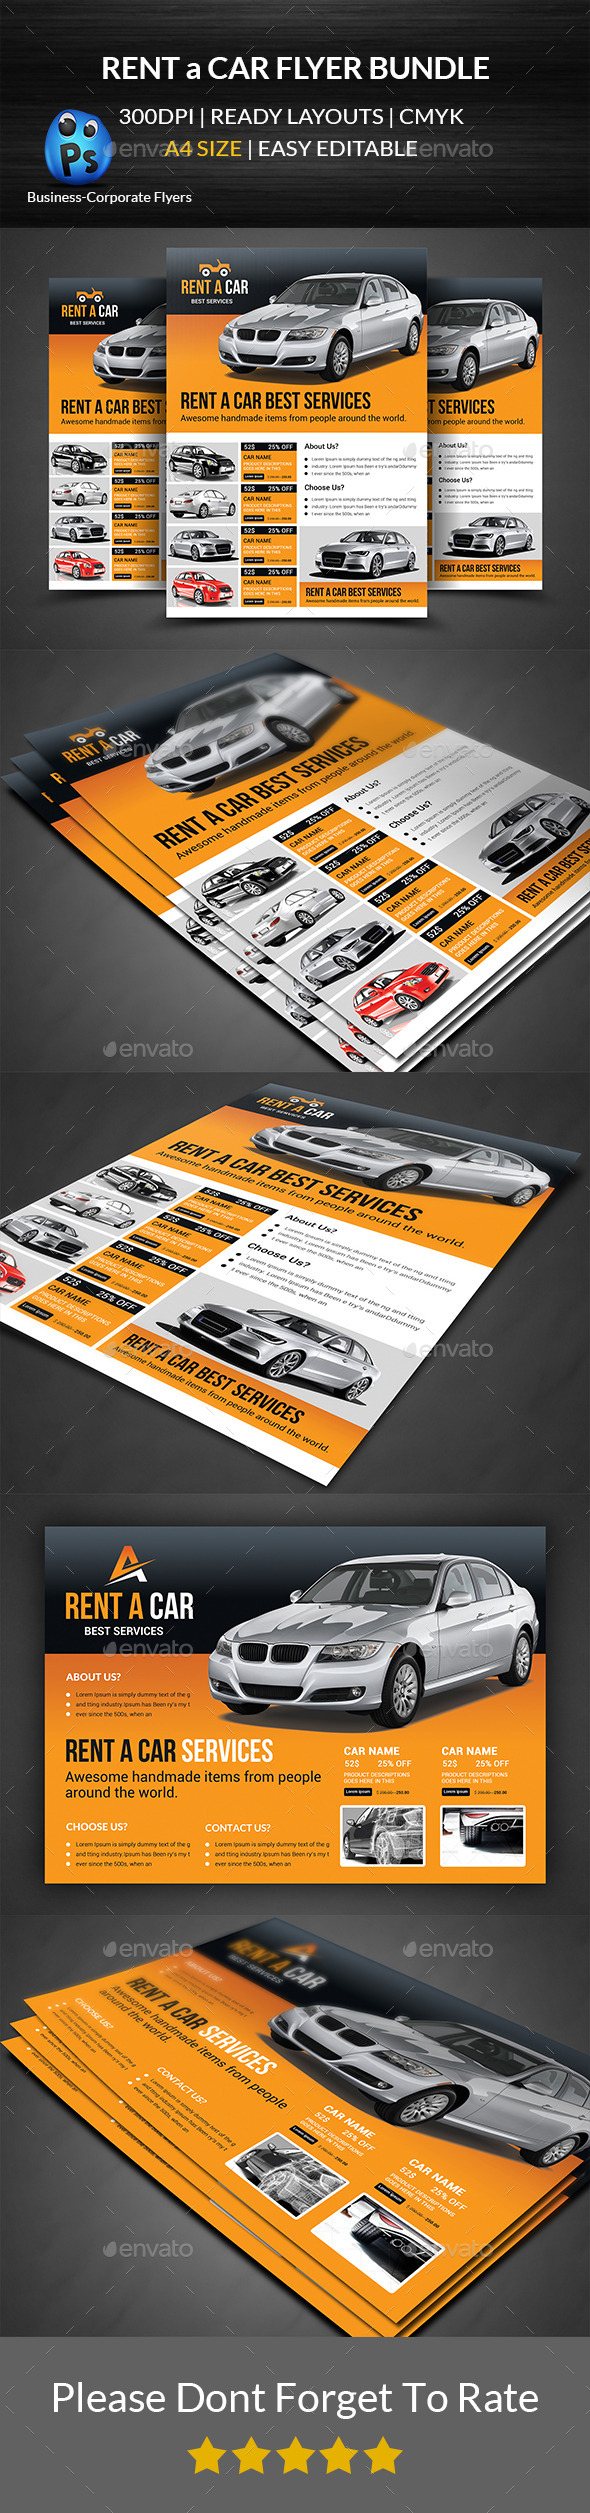 Rent a Car Flyer Bundle - Corporate Flyers